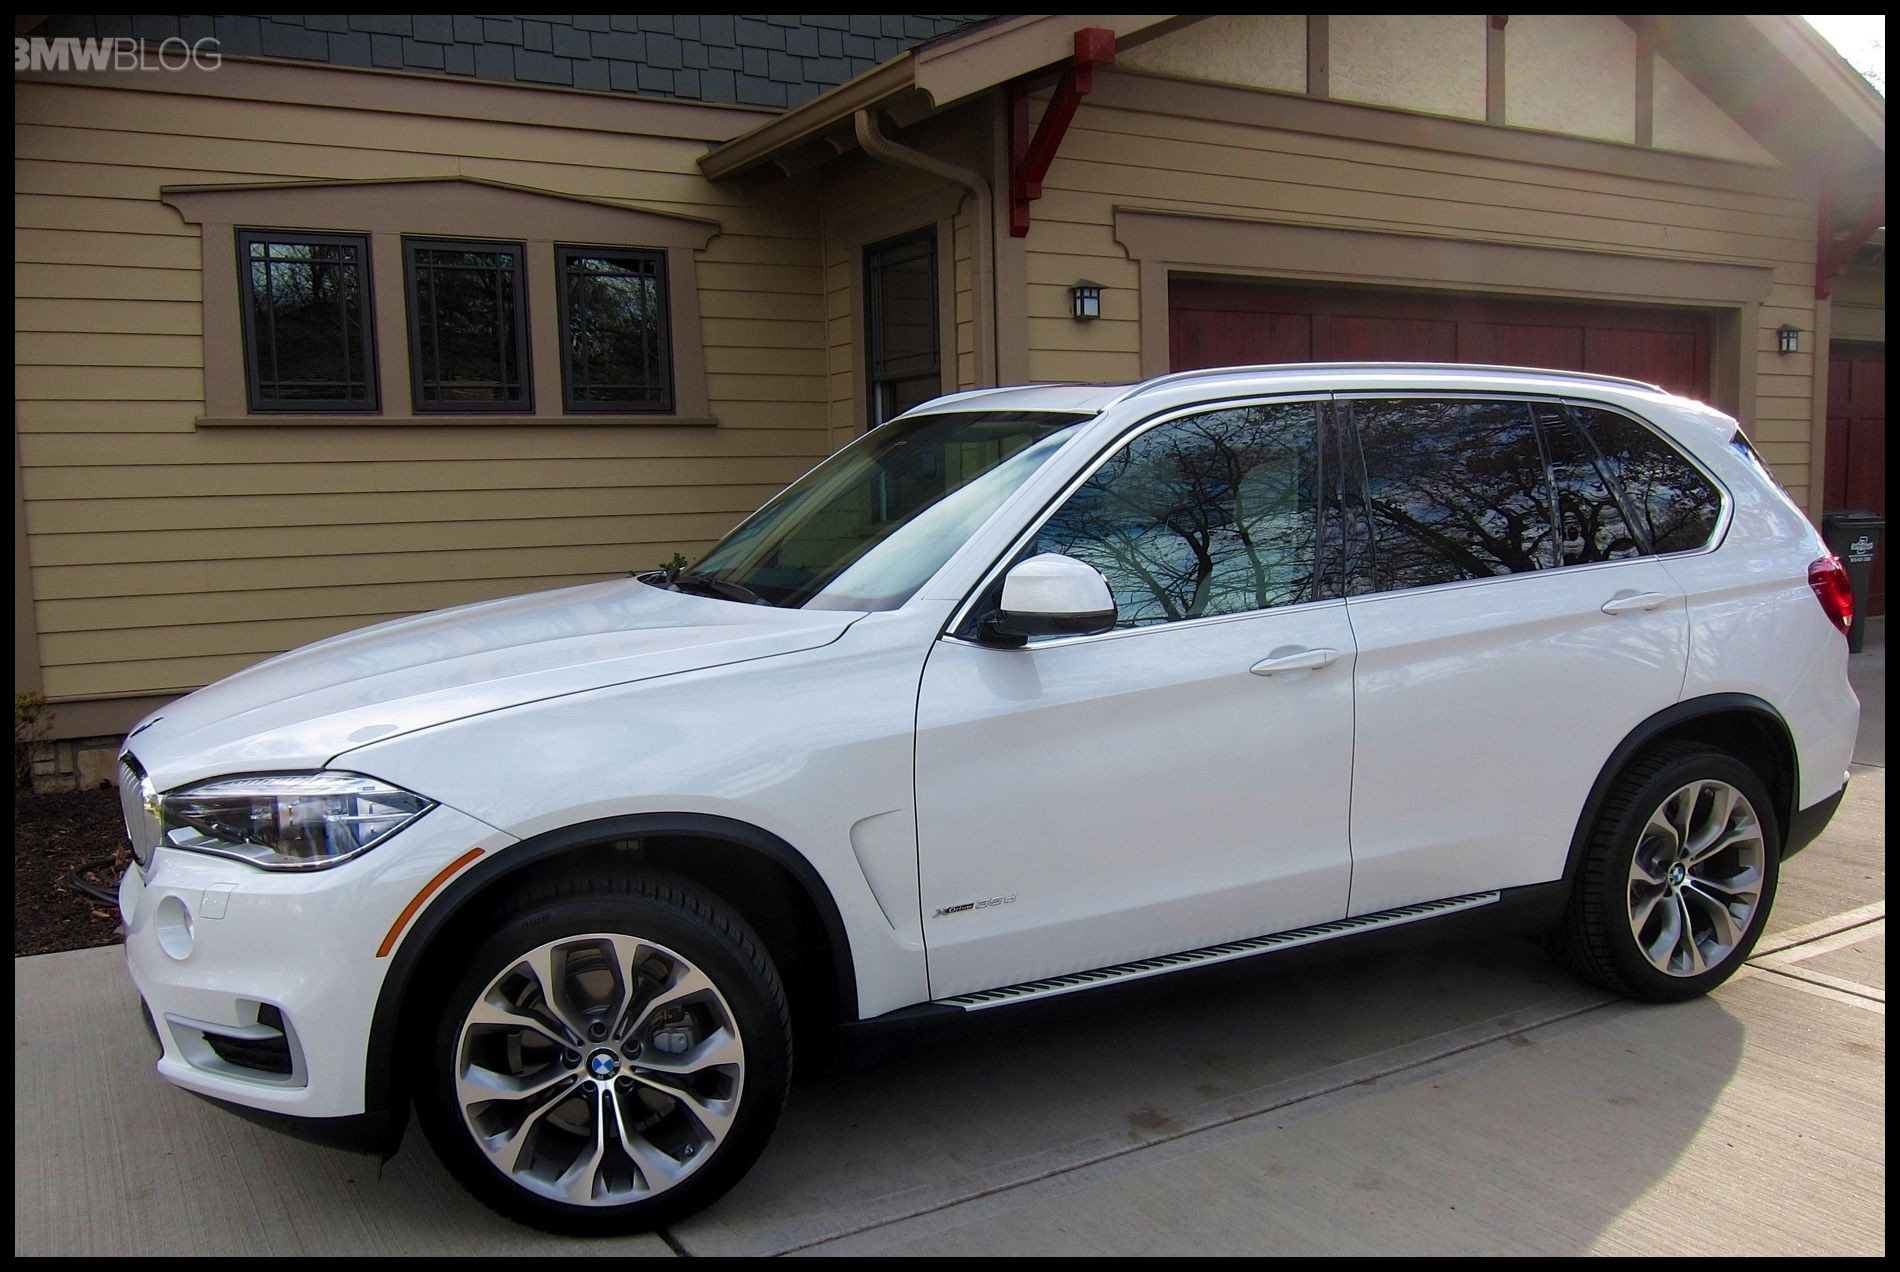 2019 Bmw X3 Inspirational 2016 Bmw X5 Xdrive35d Undergoes Minor Technical Updates Delivers In